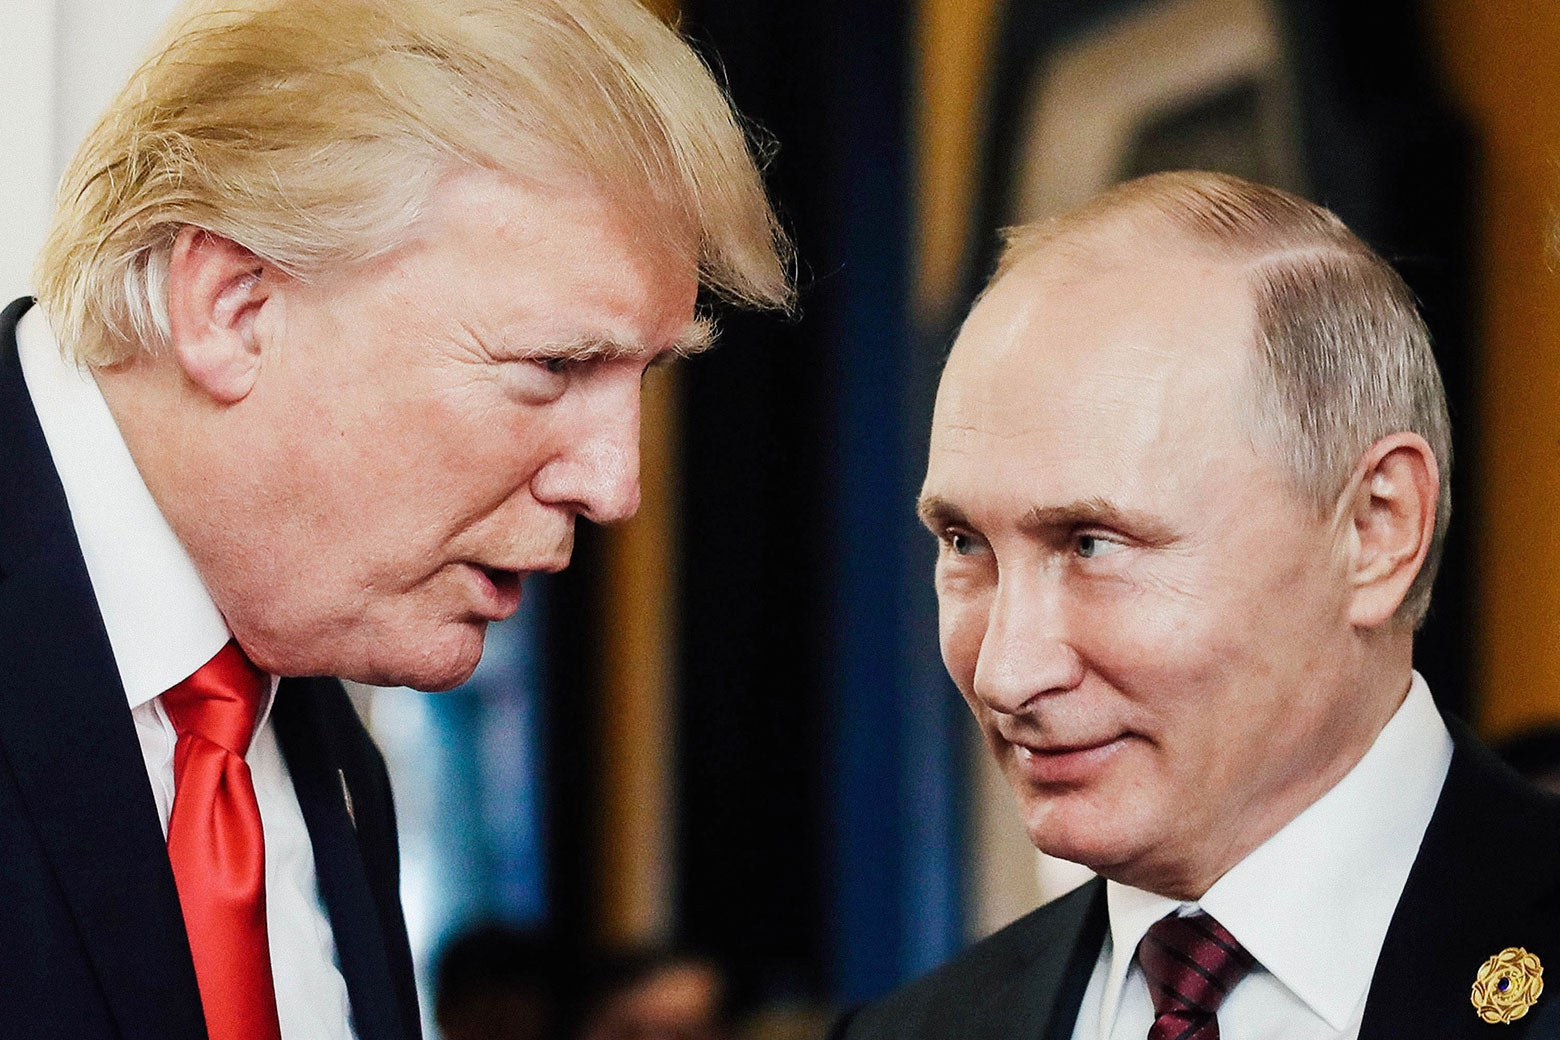 U.S. President Donald Trump chats with Russia's President Vladimir Putin as they attend the APEC Economic Leaders' Meeting in Da Nang, Vietnam, on Nov. 11.